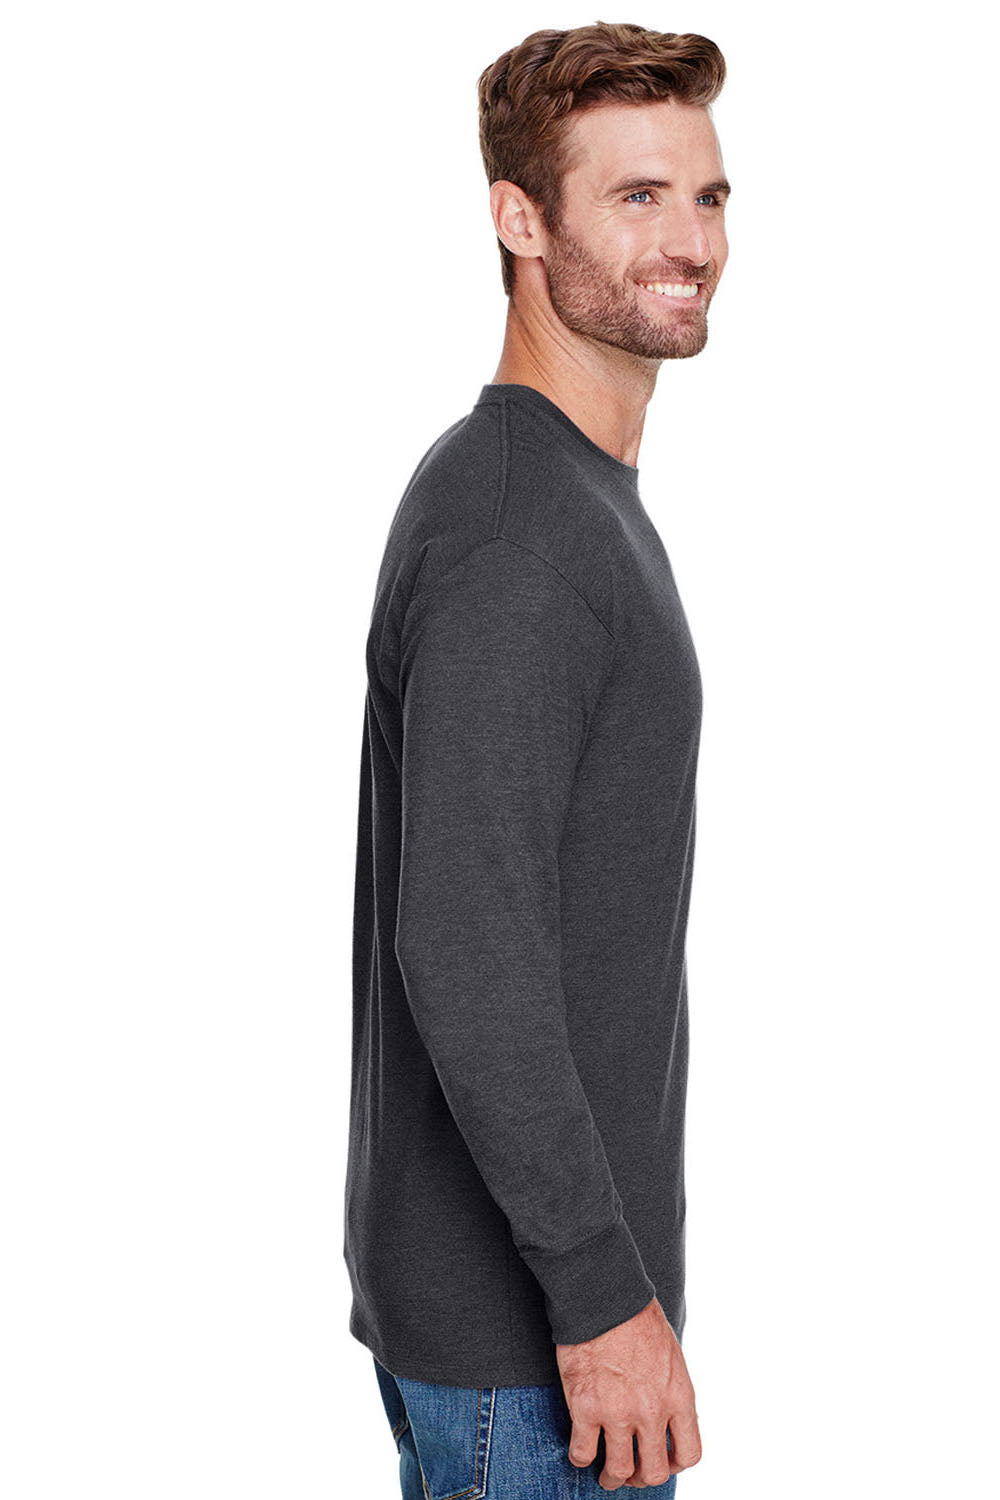 Champion CP15 Mens Long Sleeve Crewneck T-Shirt Heather Charcoal Grey Side